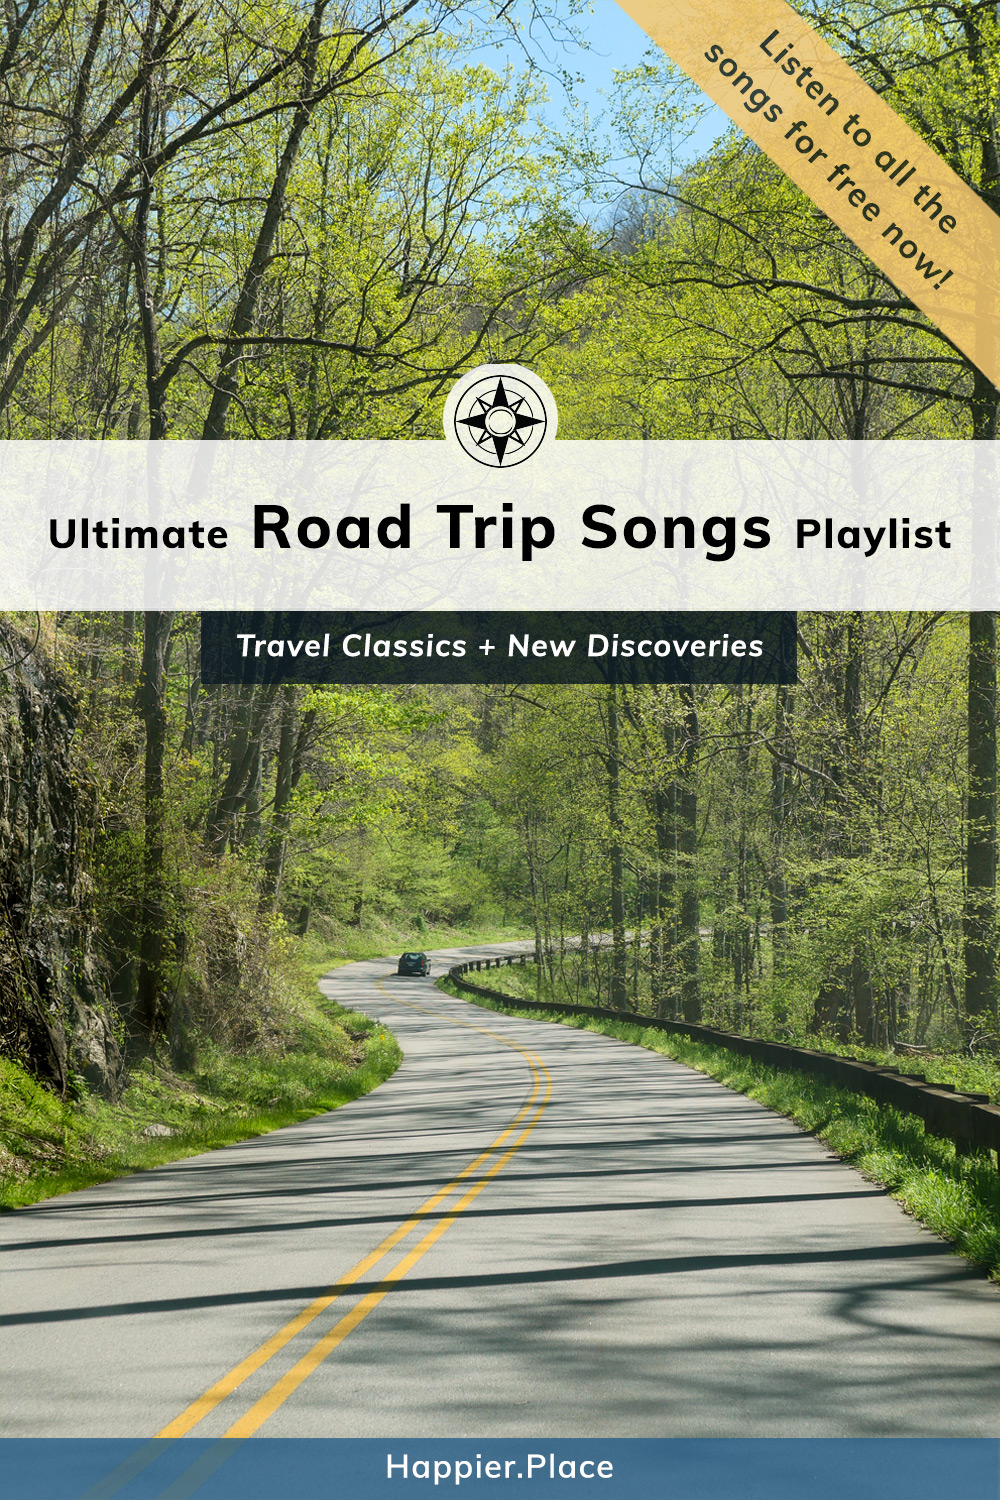 Ultimate Road Trips Songs Playlist featuring travel classics and new discoveries. Listen to all the songs now for free. #roadtrip #music #travel #playlist